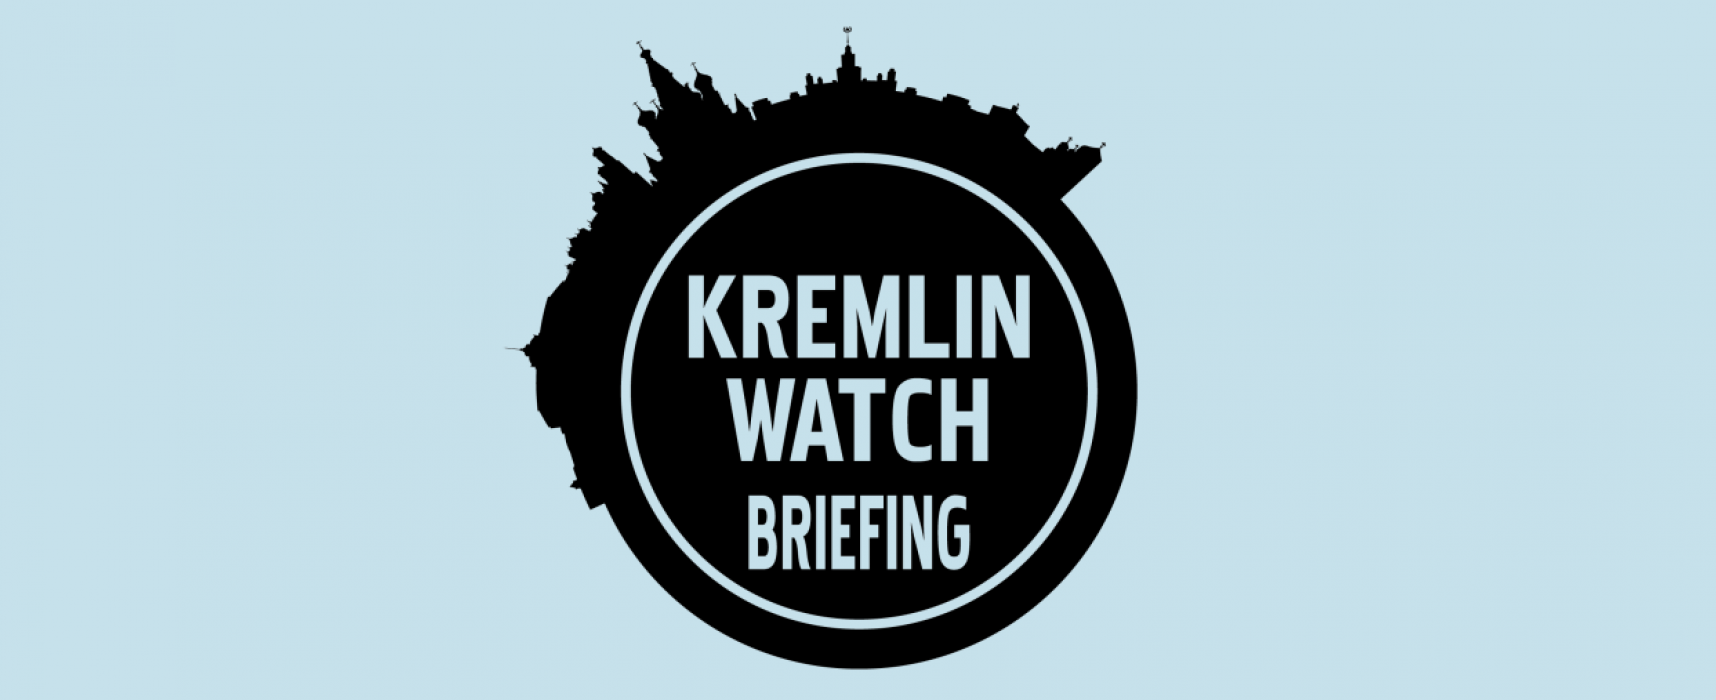 Kremlin Watch Briefing: Who is behind the top 5 Russian channels?